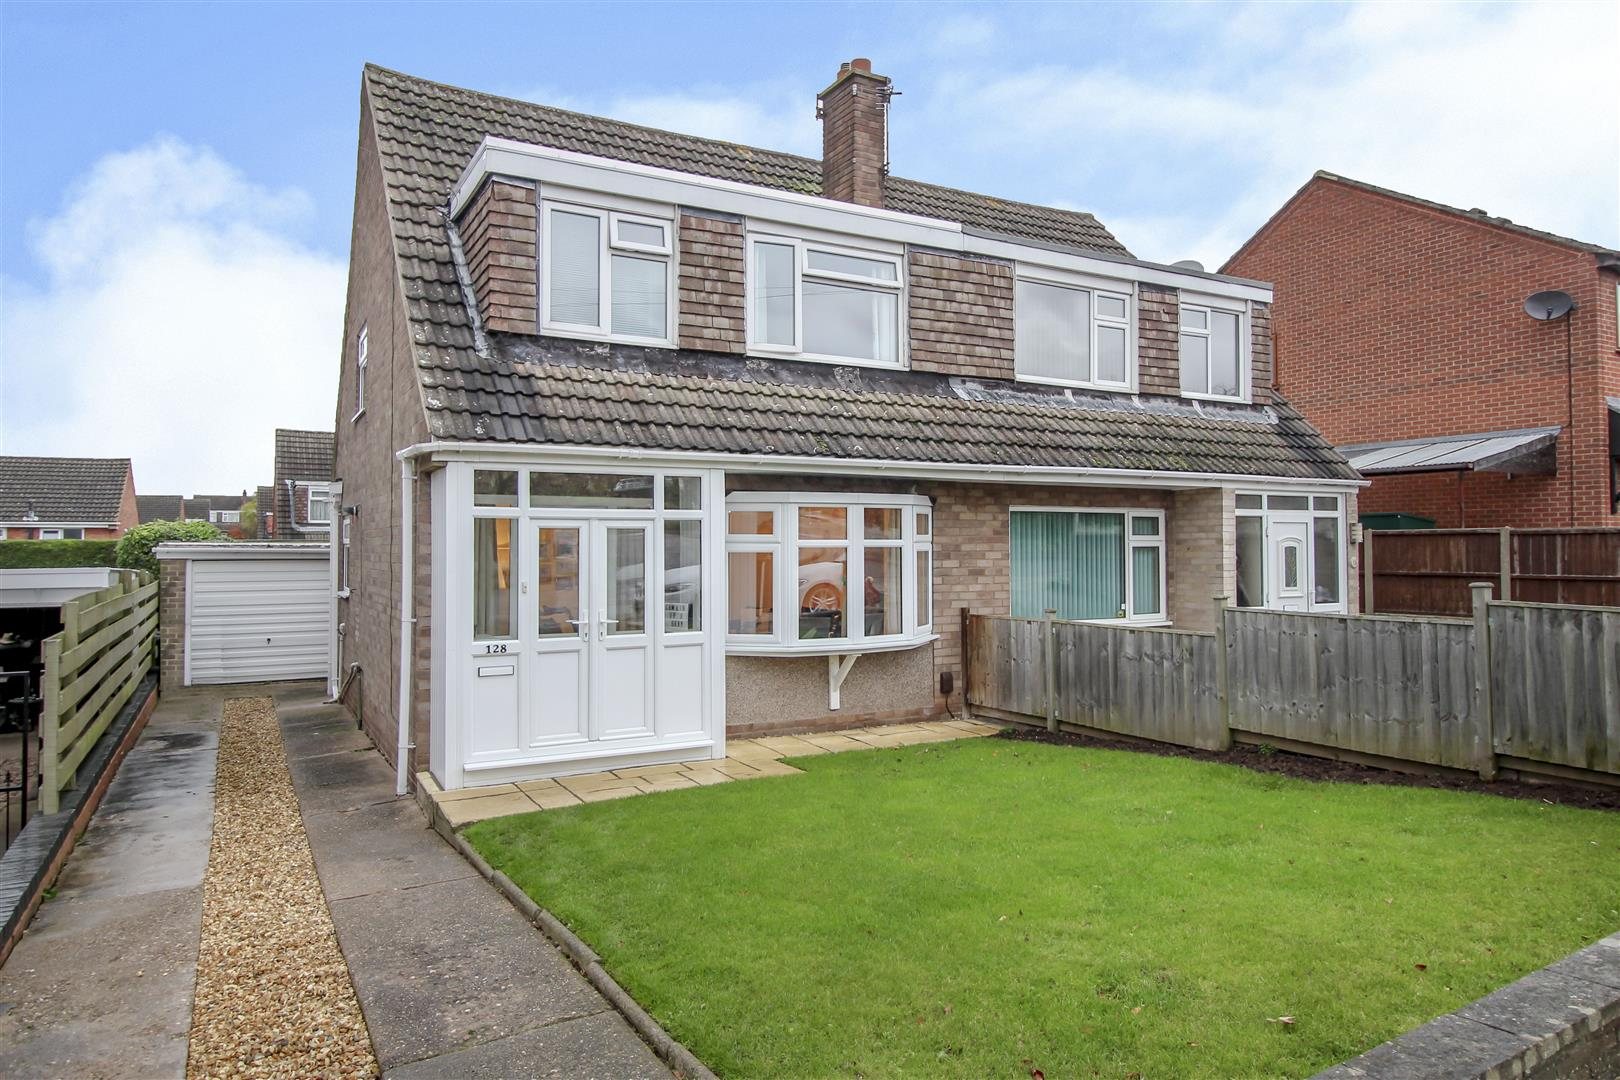 3 Bedrooms Semi Detached House for sale in Sisley Avenue, Stapleford, Nottingham